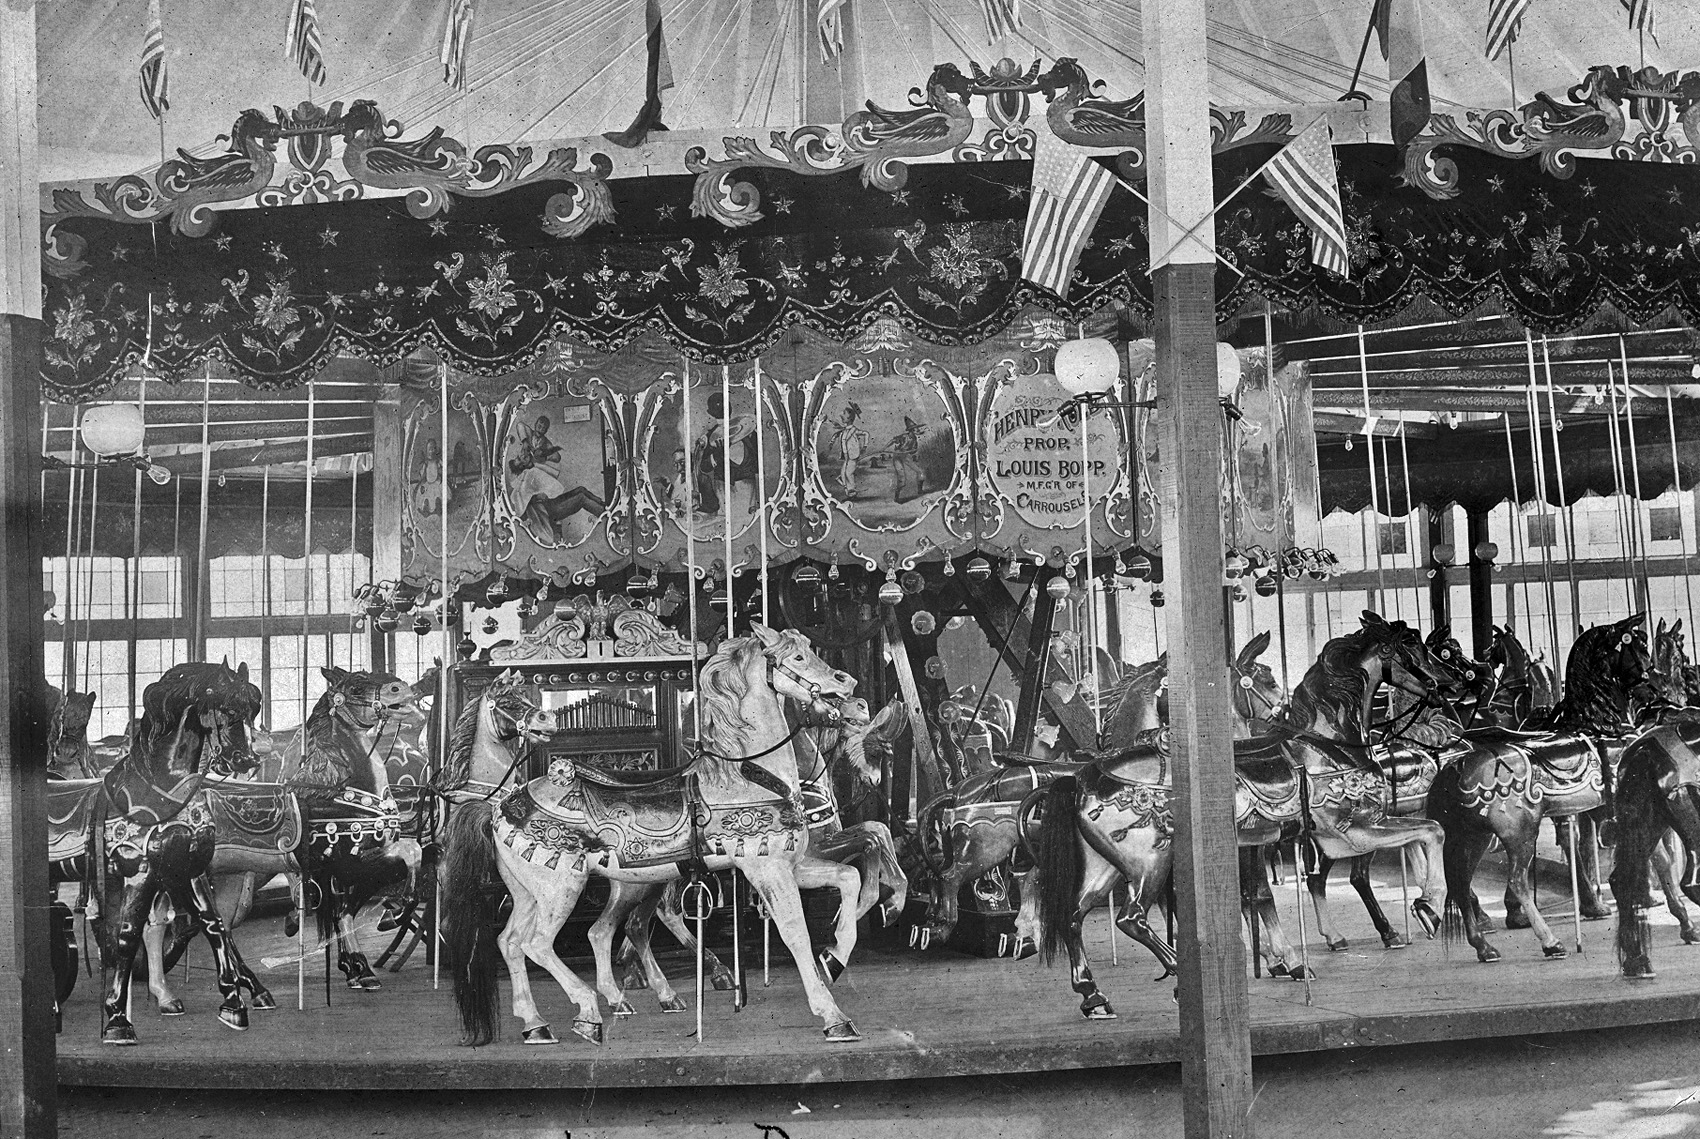 1890s-Sulzers-Louis-Bopp-Carousel-Harlem-River-Park-Looff-horses